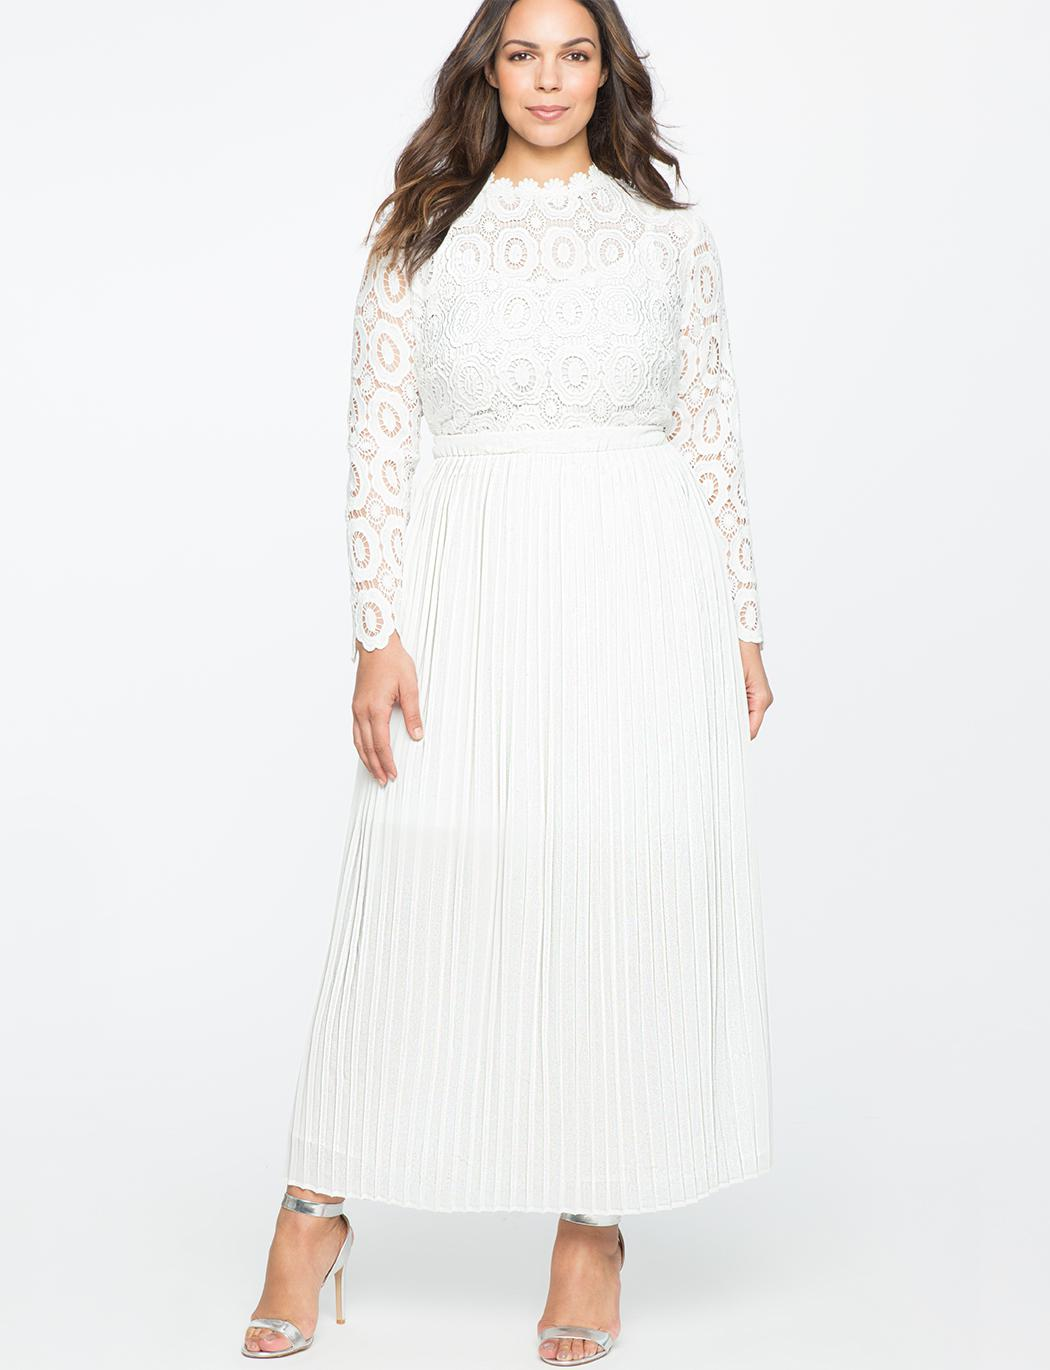 Lyst - Eloquii Lace Evening Dress With Pleated Skirt in White